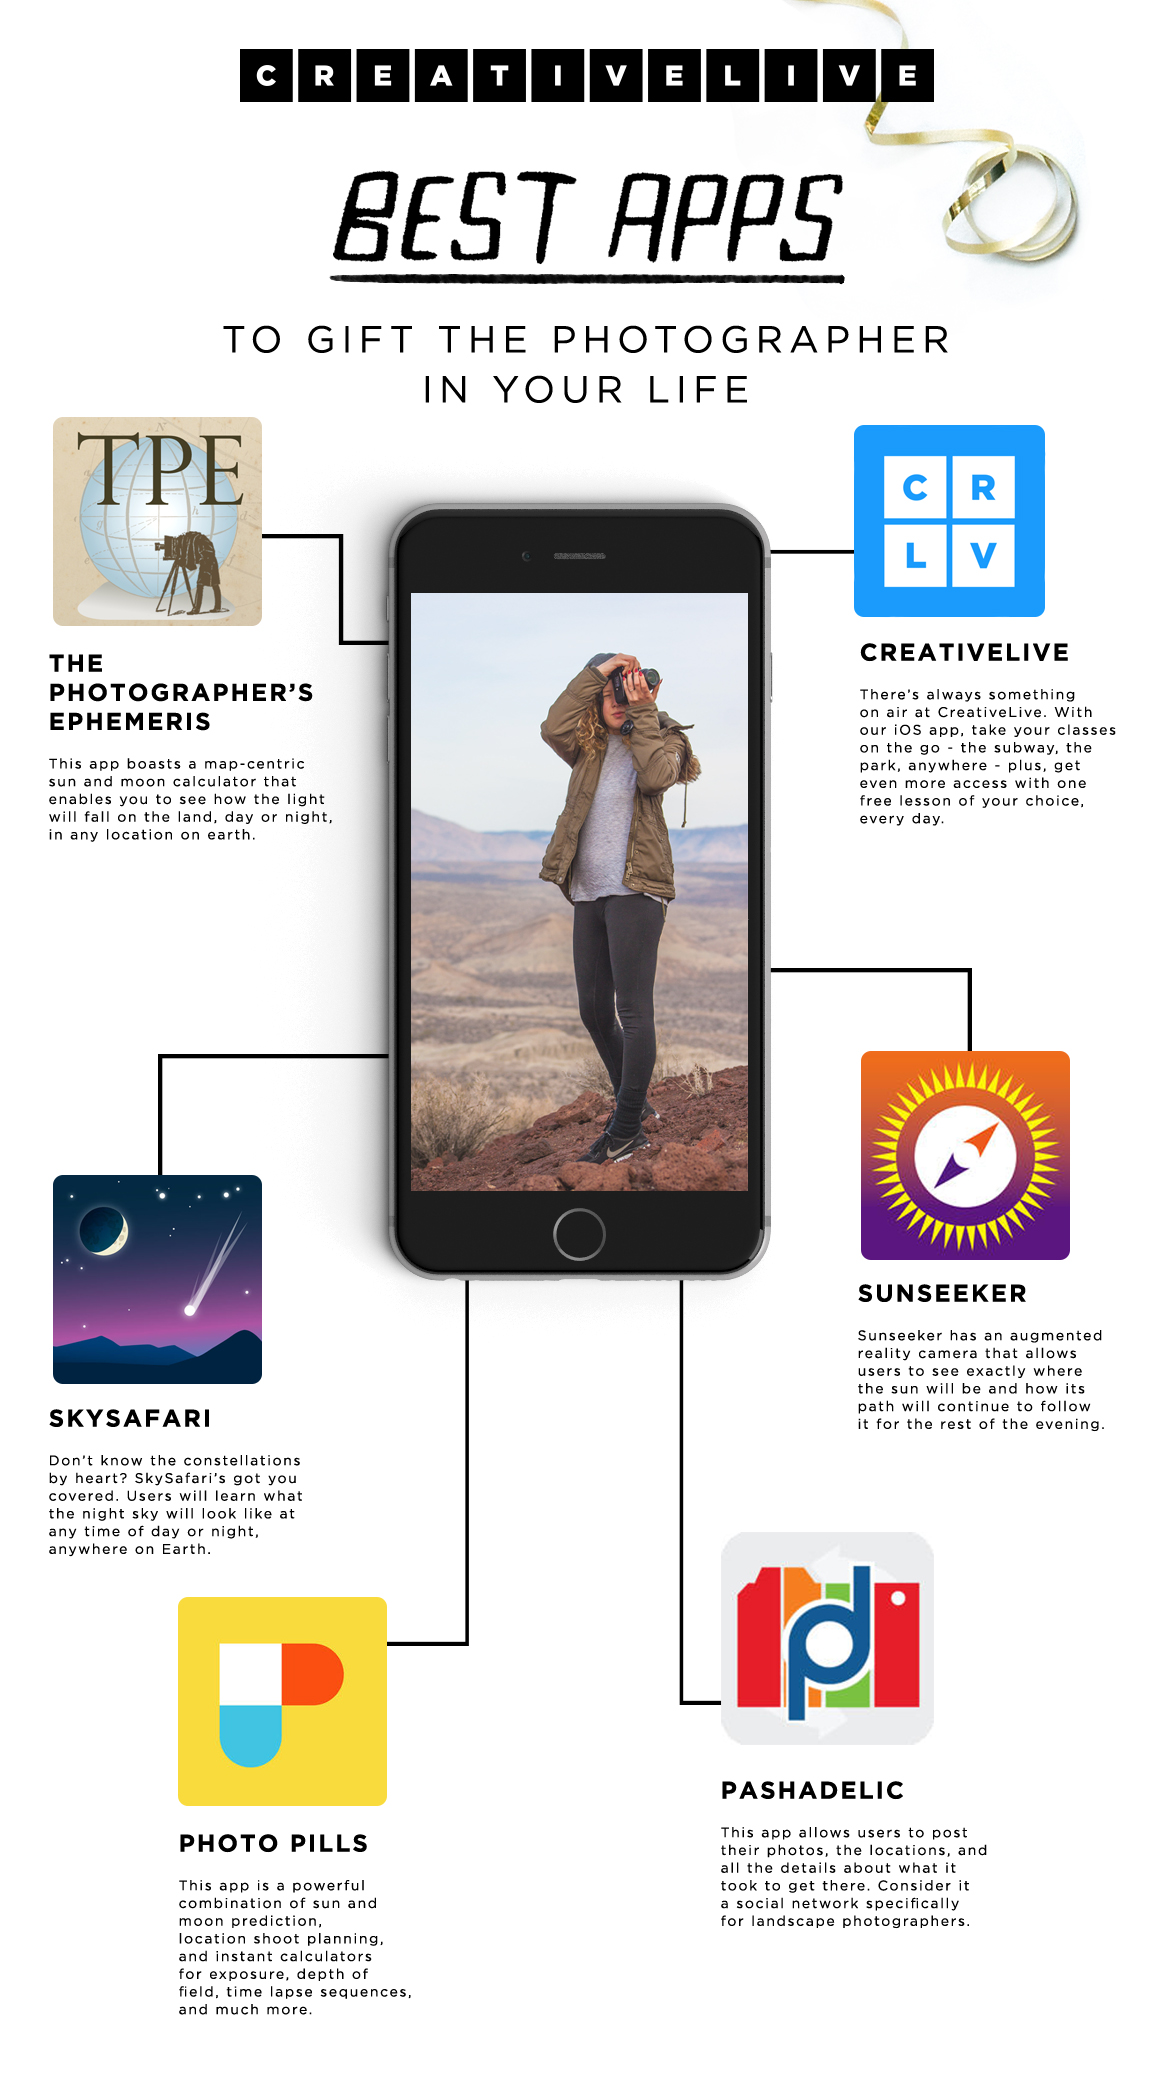 Essential apps every photographer needs in 2017 to level up their mobile photo game!